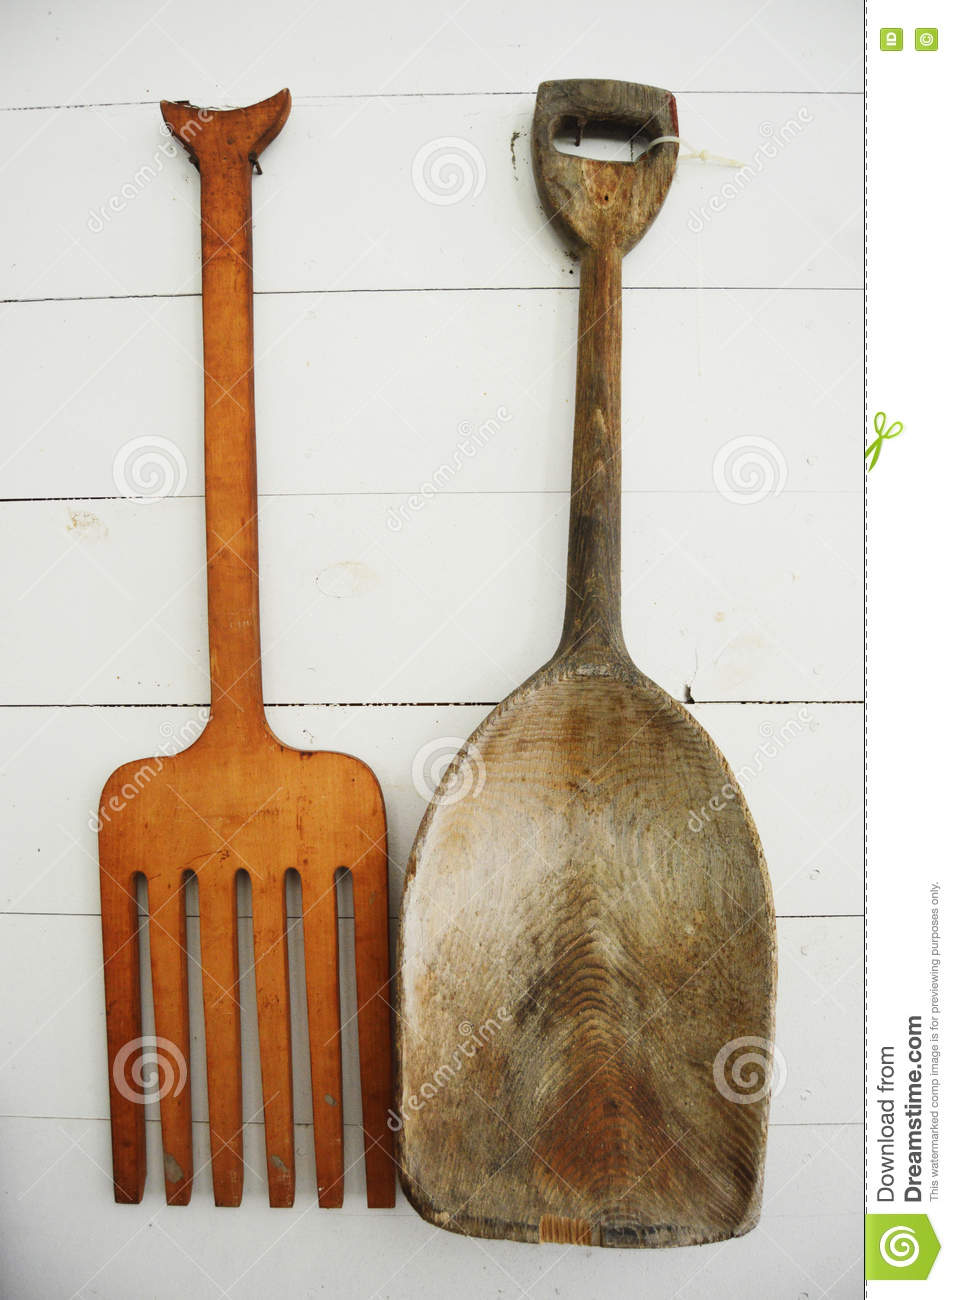 Wooden Pitchfork And Shovel Stock Photo Image Of Tool Antique